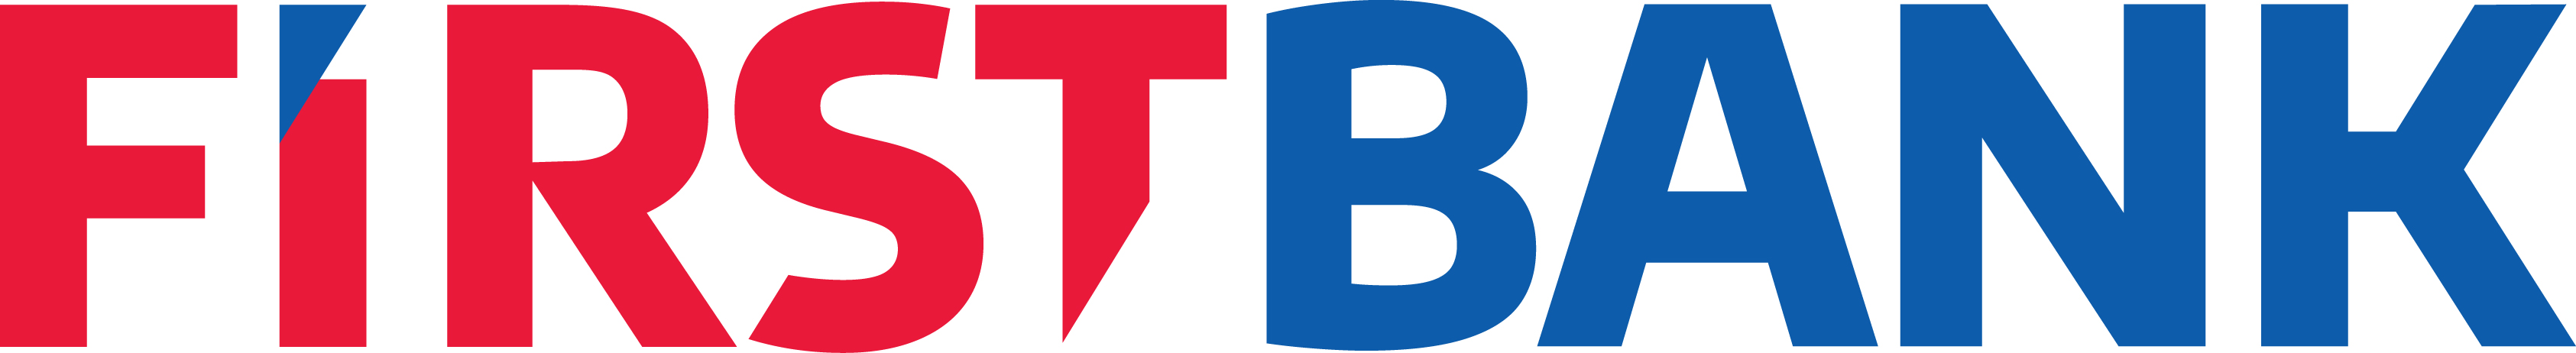 First Bank, formerly Piraeus Bank, reveals new logo and.